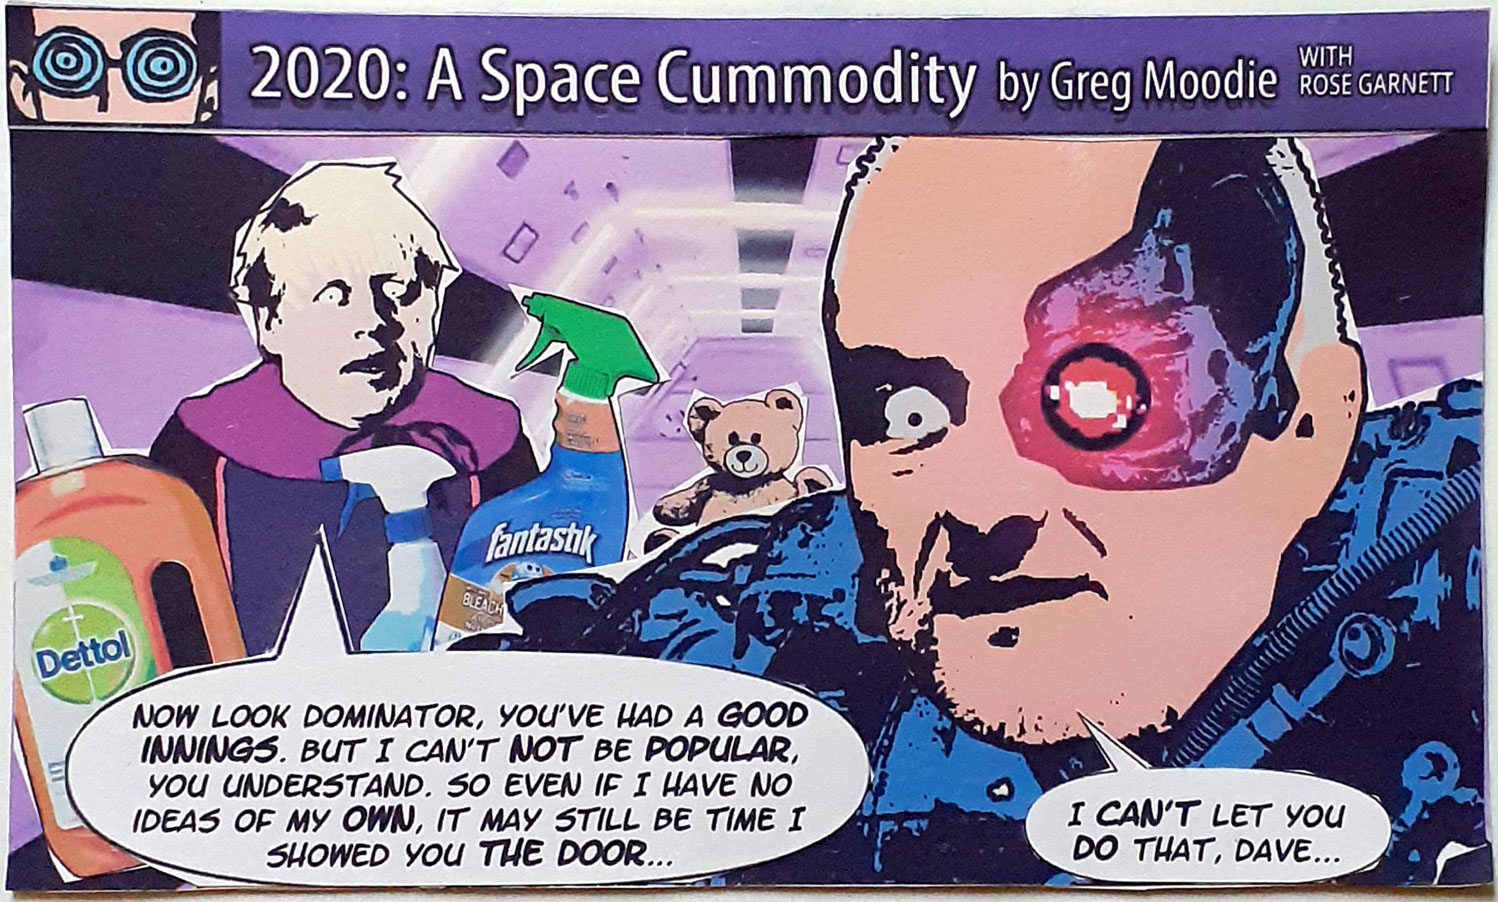 2020: A Space Cummodity